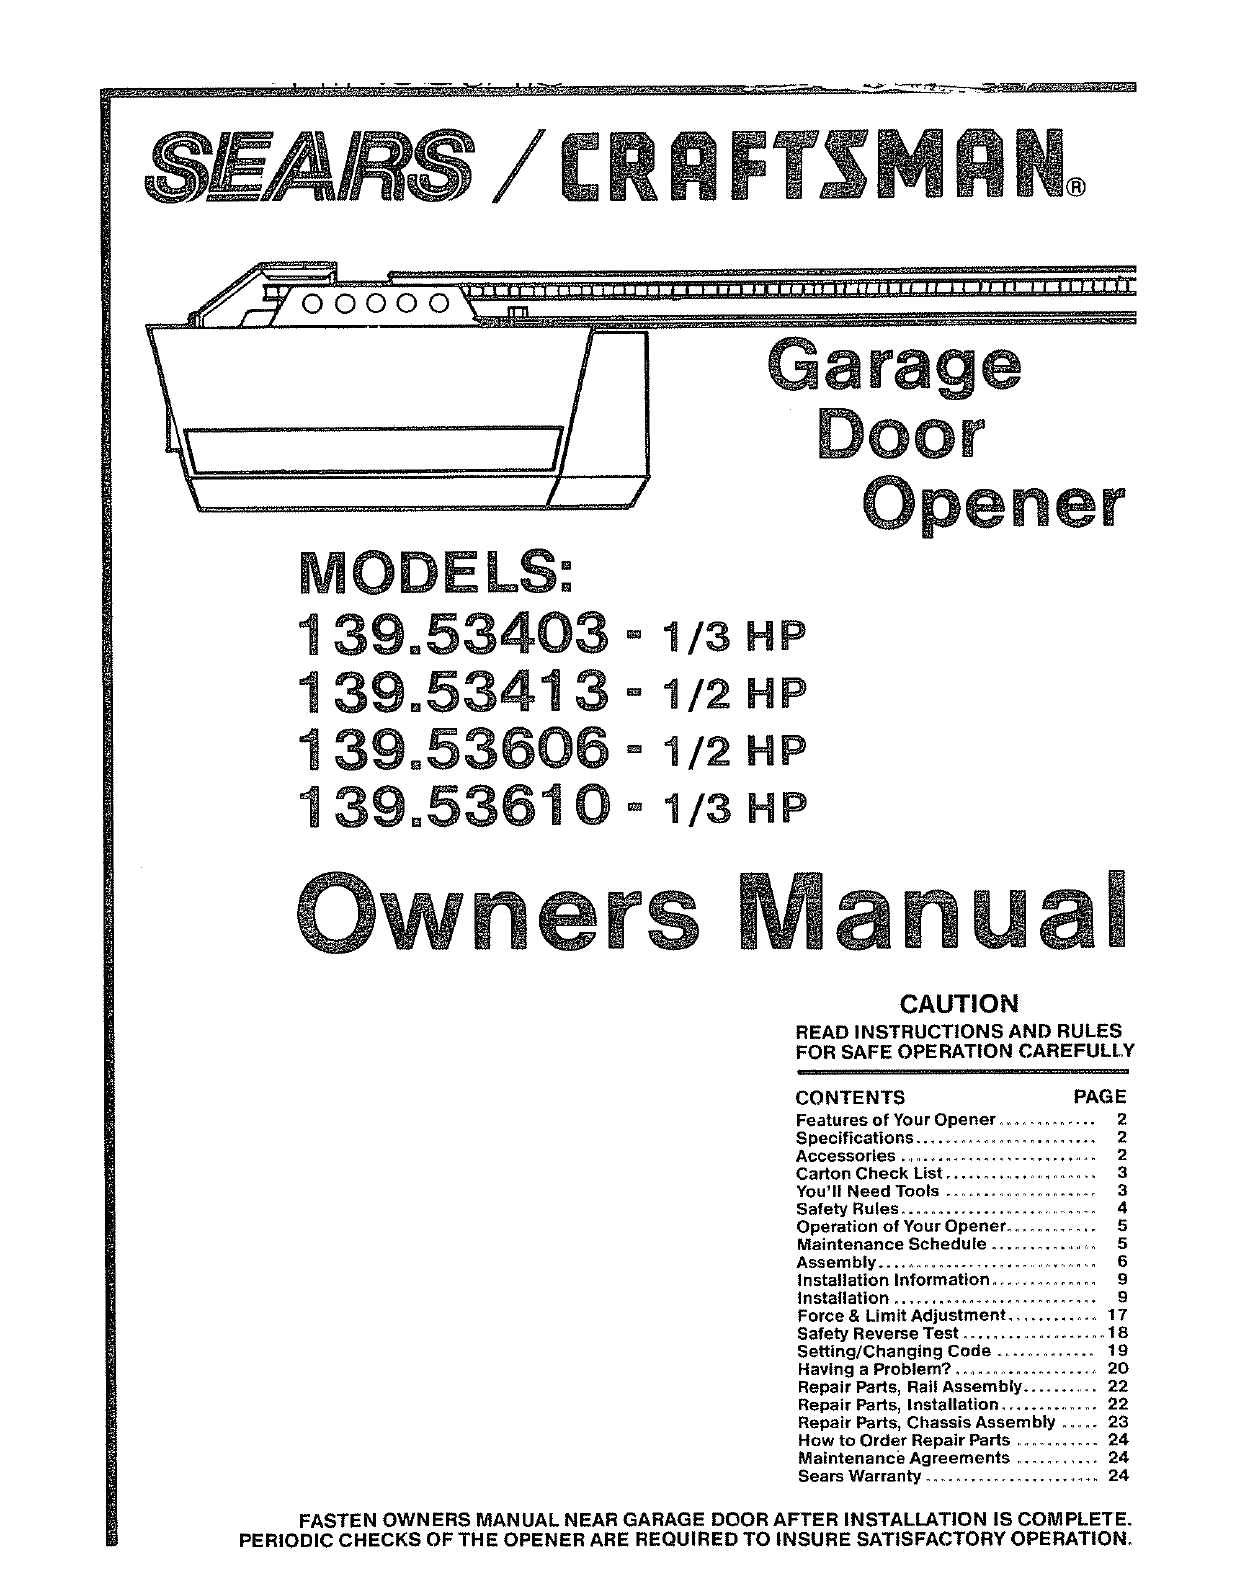 doors model g craftsman parts manual opener door garageor manuals genie screw garage